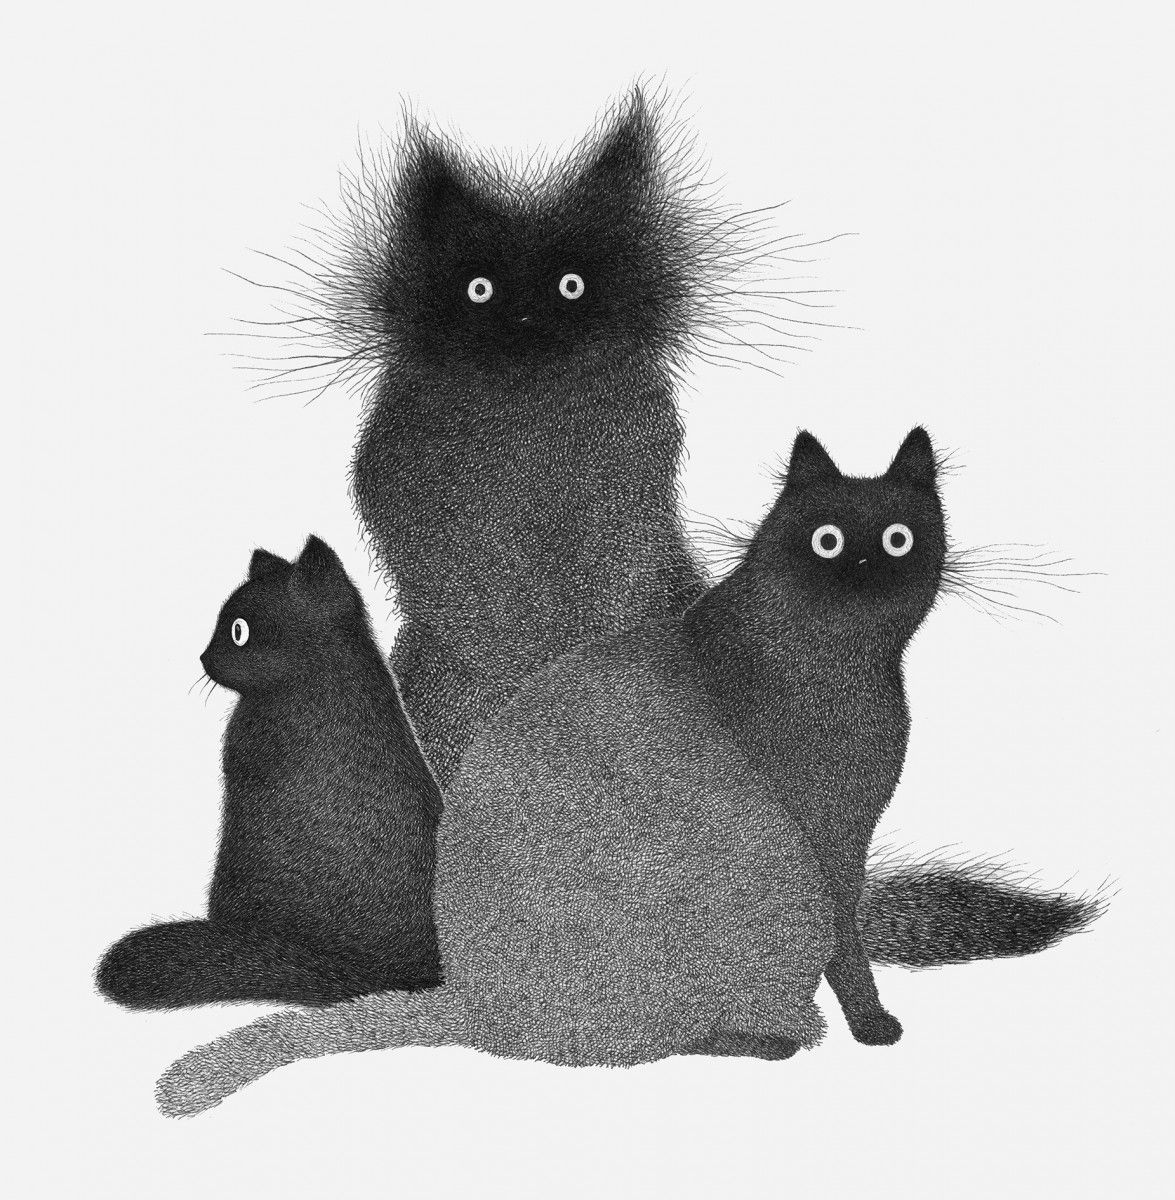 Frazzled Cats Formed From Hundreds Of Hatched Lines By